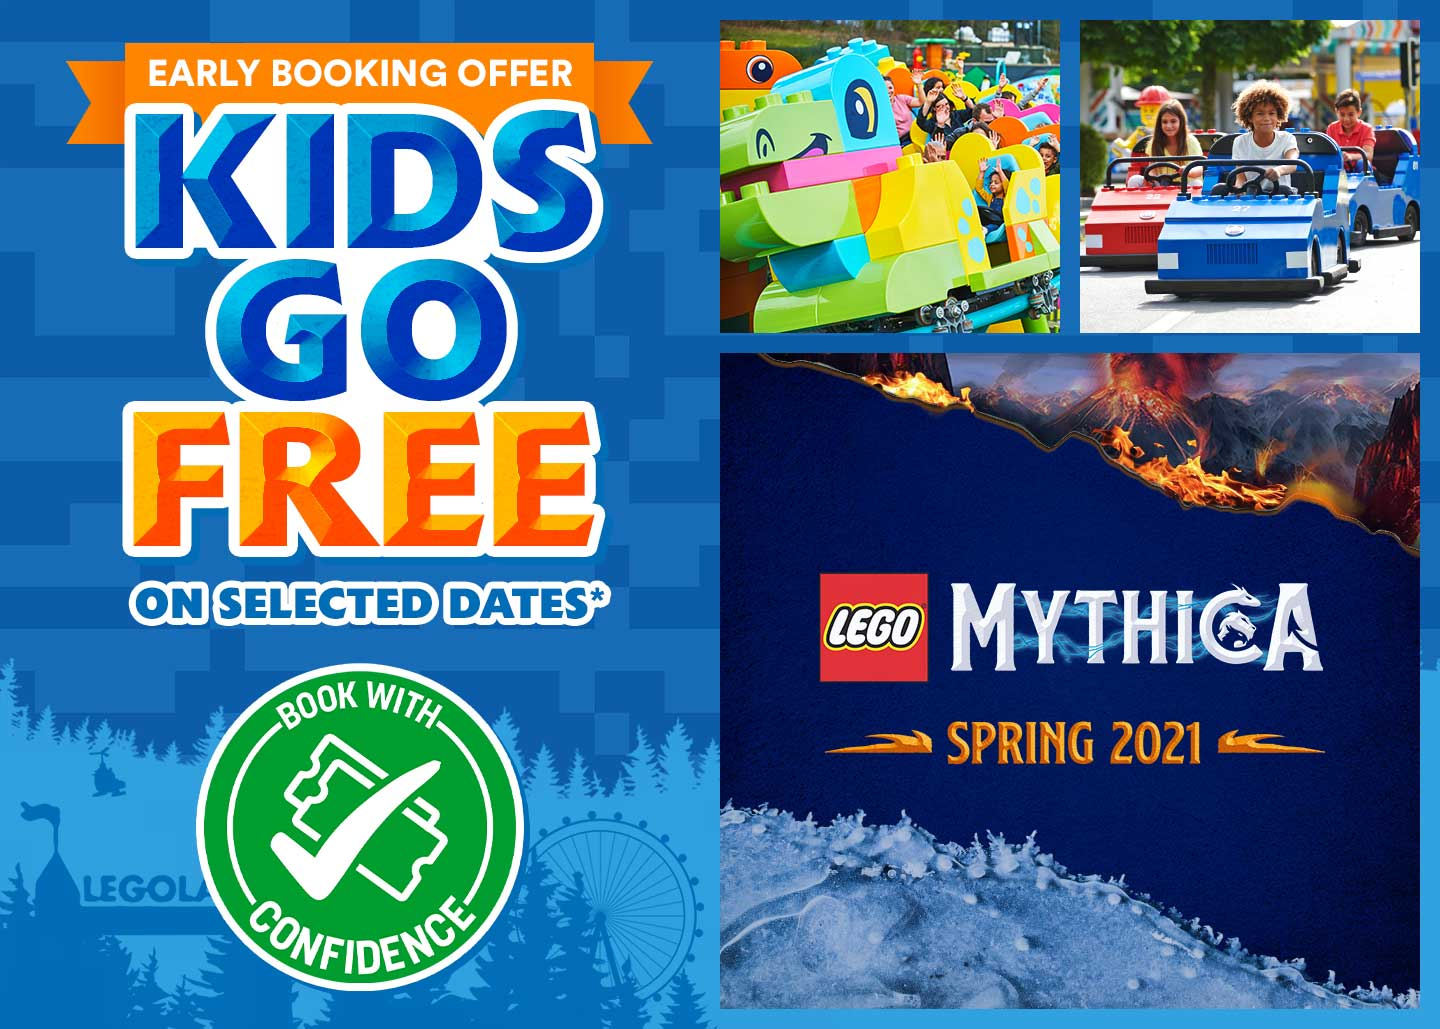 Early Booking Offer, Kids Go FREE with LEGOLAND Holidays